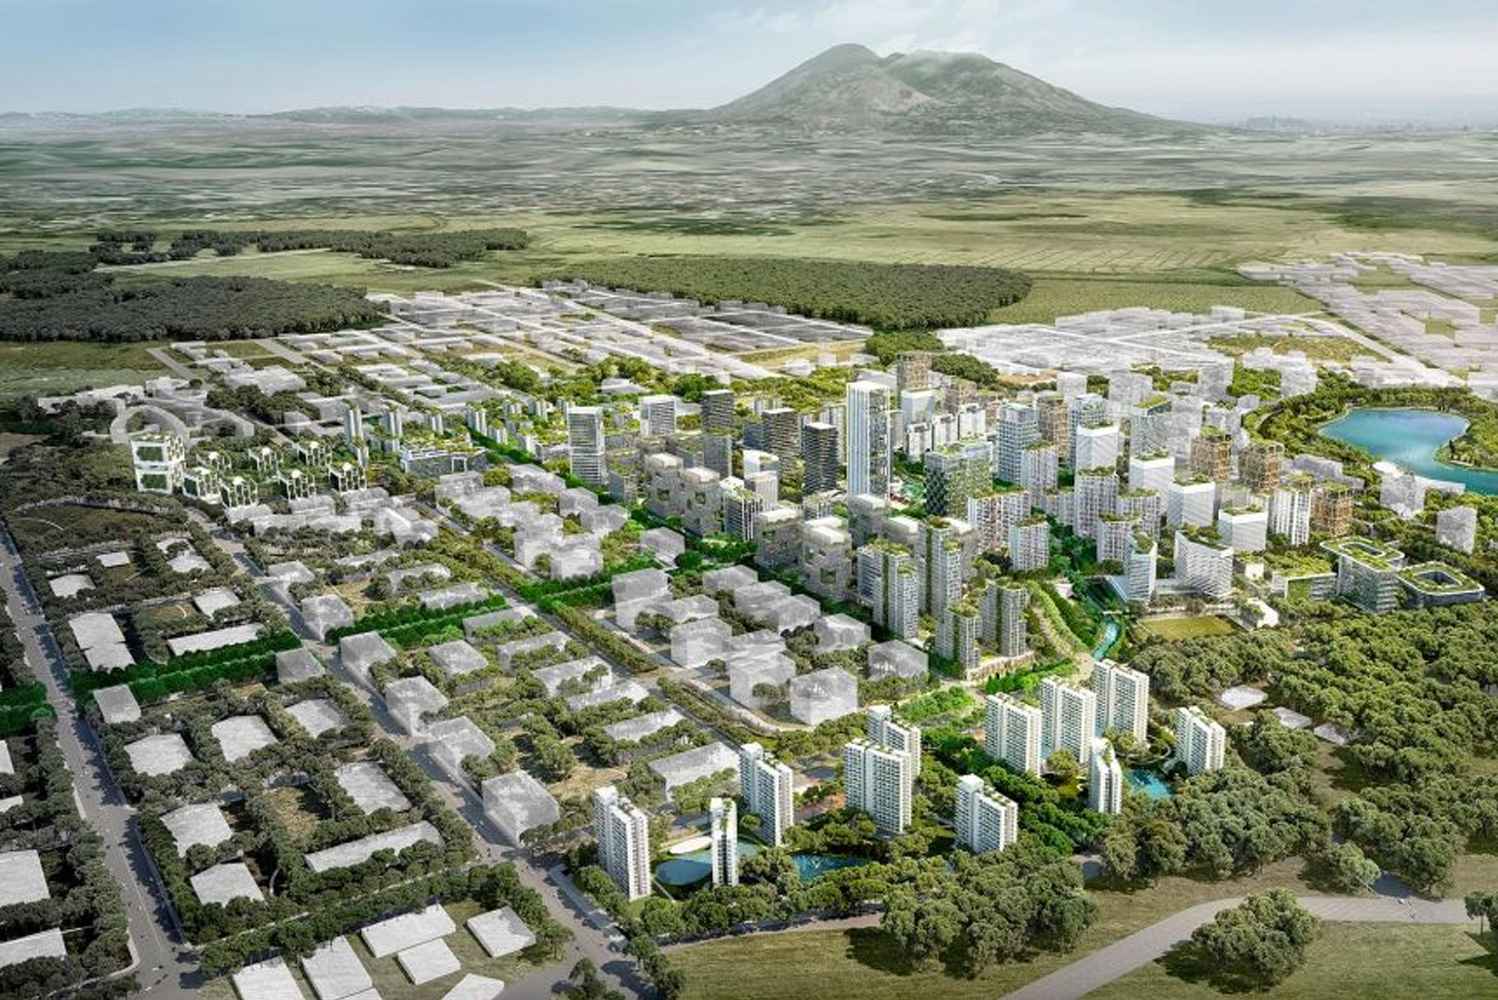 Work has started on a new city district masterplanned by Broadway Malyan in the Philippines.